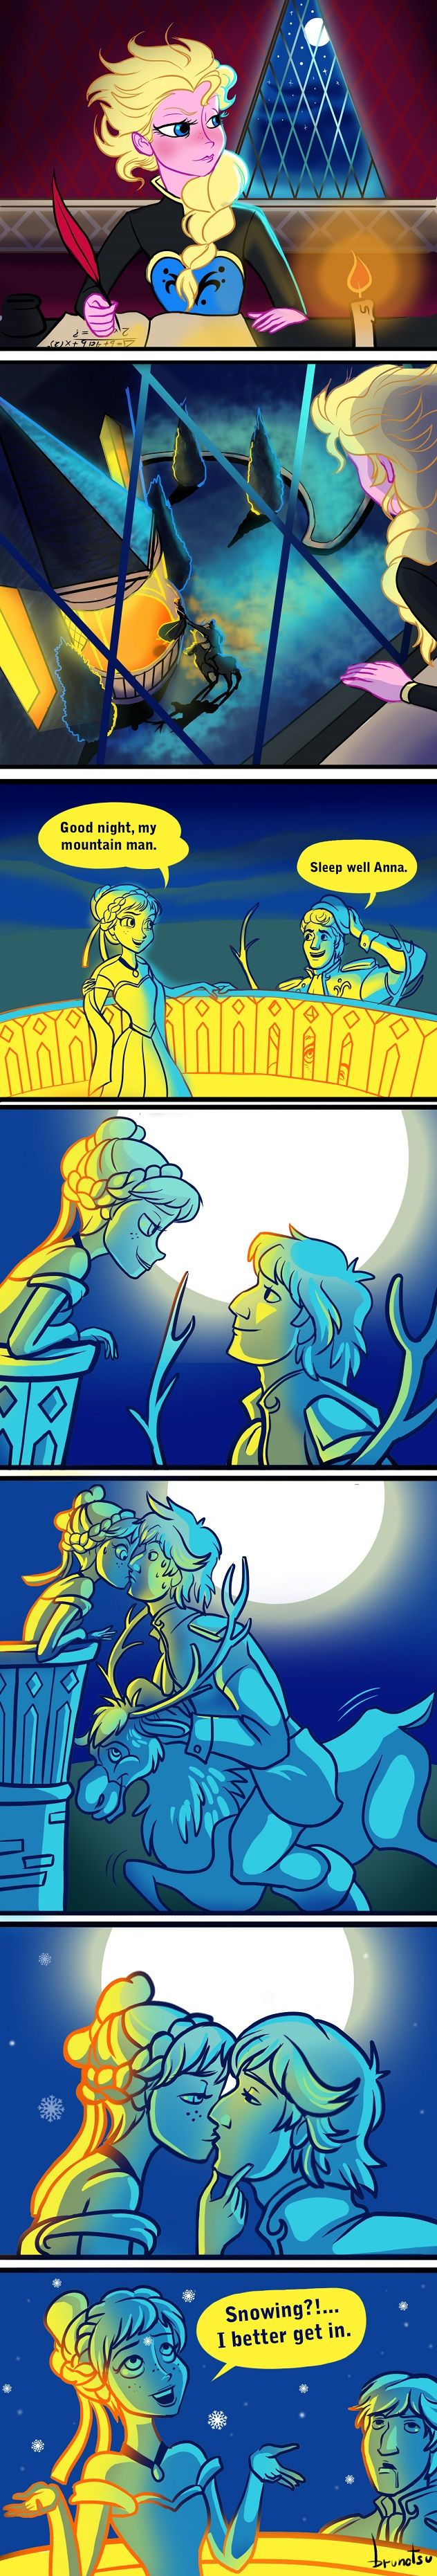 Anna, Elsa, Kristoff, & Sven Art I can see this coming from Aladdin.